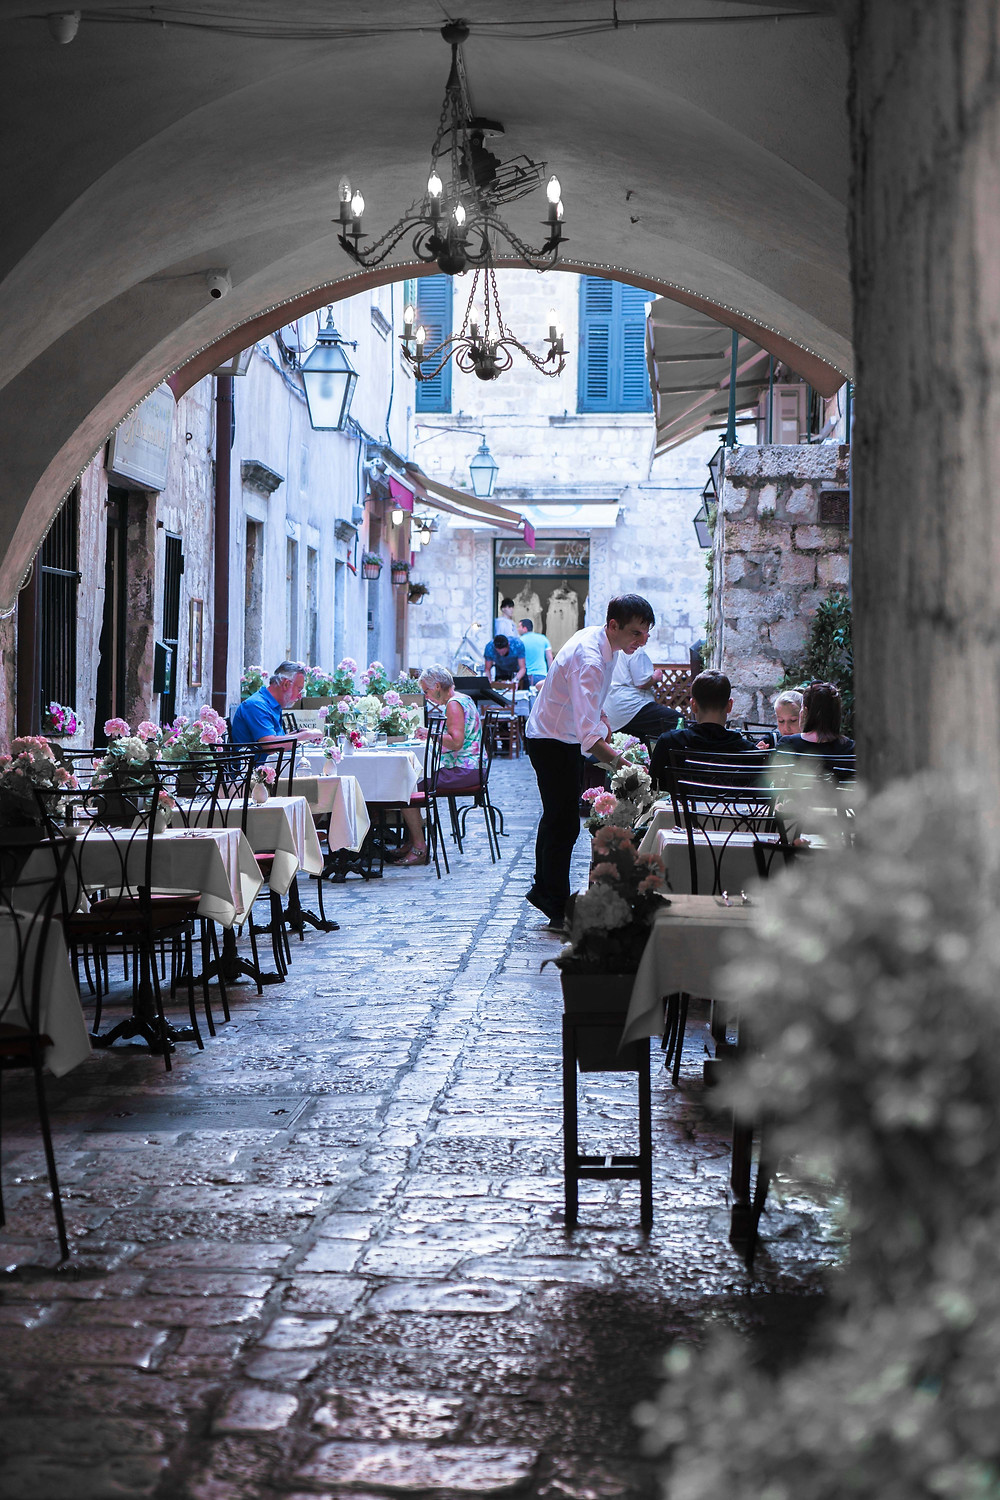 Cafes and restaurants in Dubrovnik's Old Town